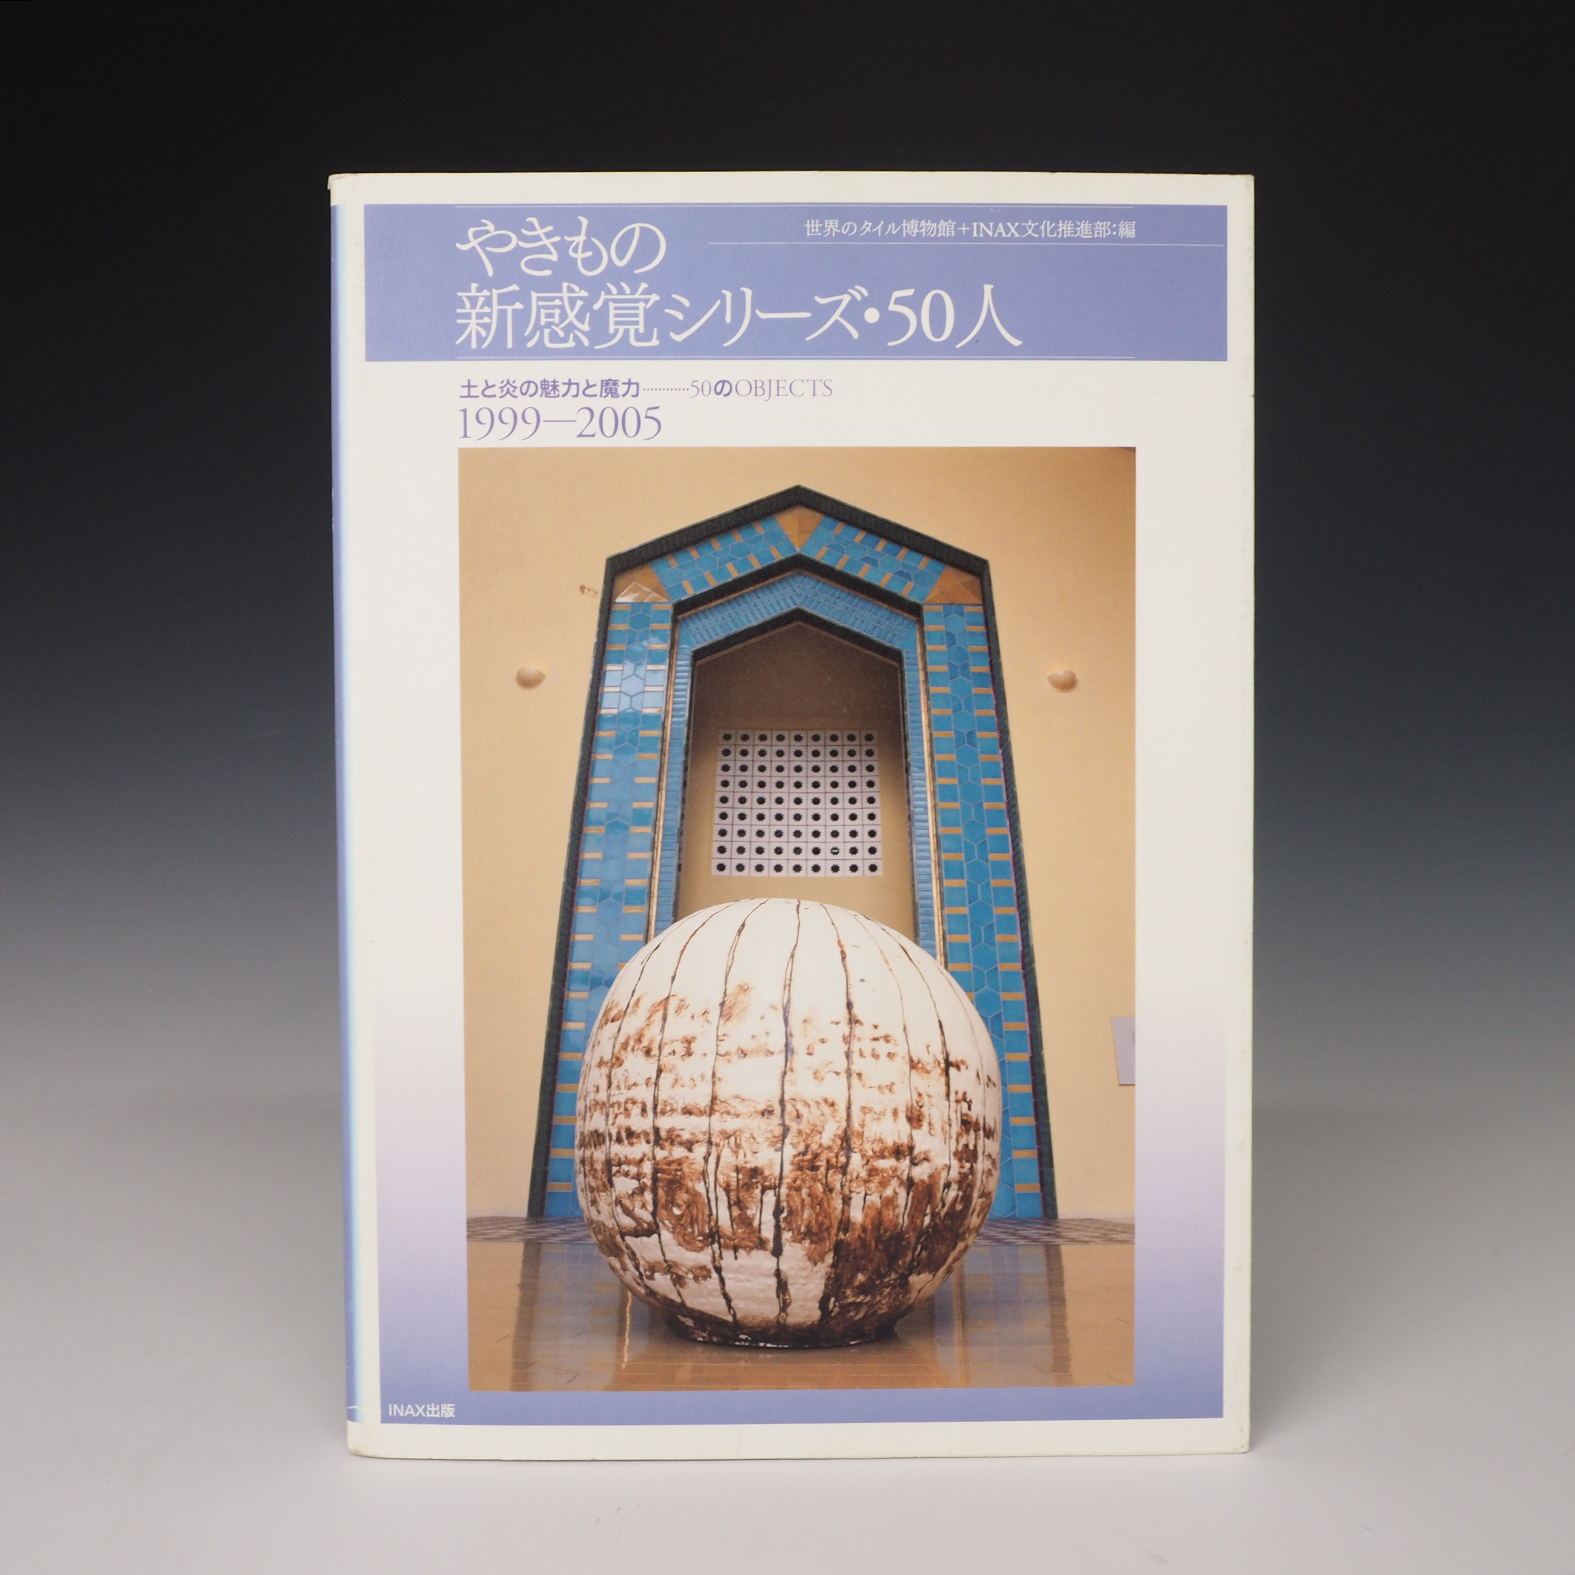 "The Charm and Magic of Clay and Fire: 50 Objects    Inax Publishing 2005, 12"" x 8½"", 176pp.The catalogue presents 50 ceramic art exhibitions held at the INAX Tile Museum from 1999 to 2005. The artists featured in the book include Masamichi Yoshikawa, Ryoji Koie, Akira Yagi, Takashi Hinoda, Harumi Nakashima, Takuo Nakamura, Yo Akiyama, sharing each artist's insights. Written in Japanese."